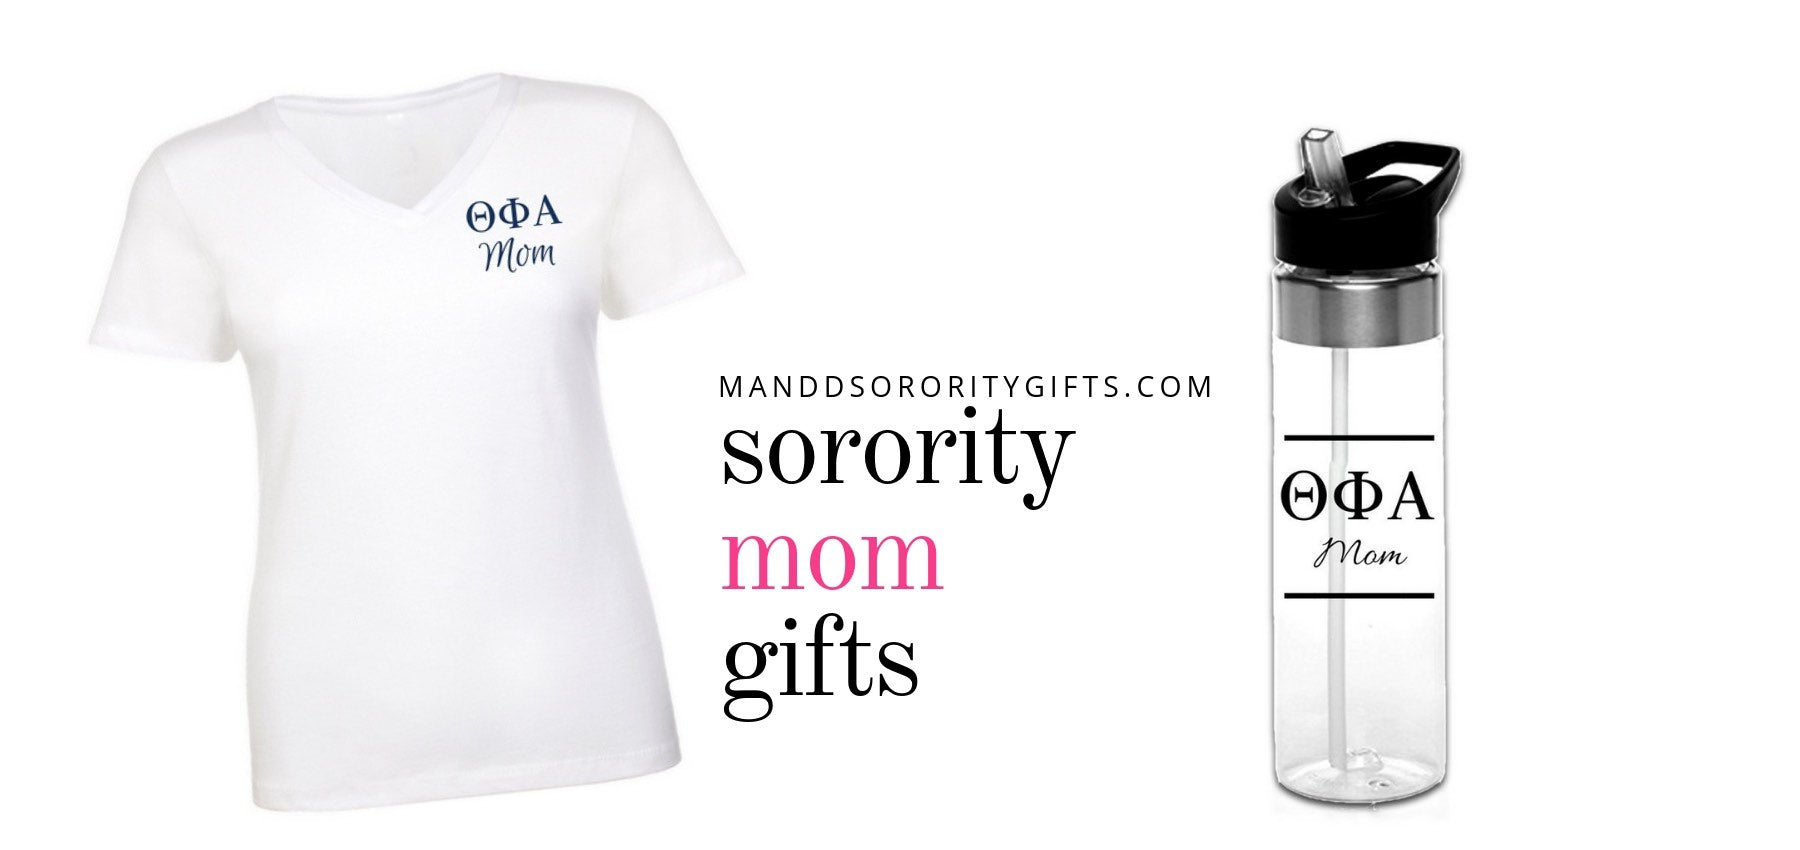 Theta Phi Alpha Mom Gifts I 12 Reasons Moms Are the Best